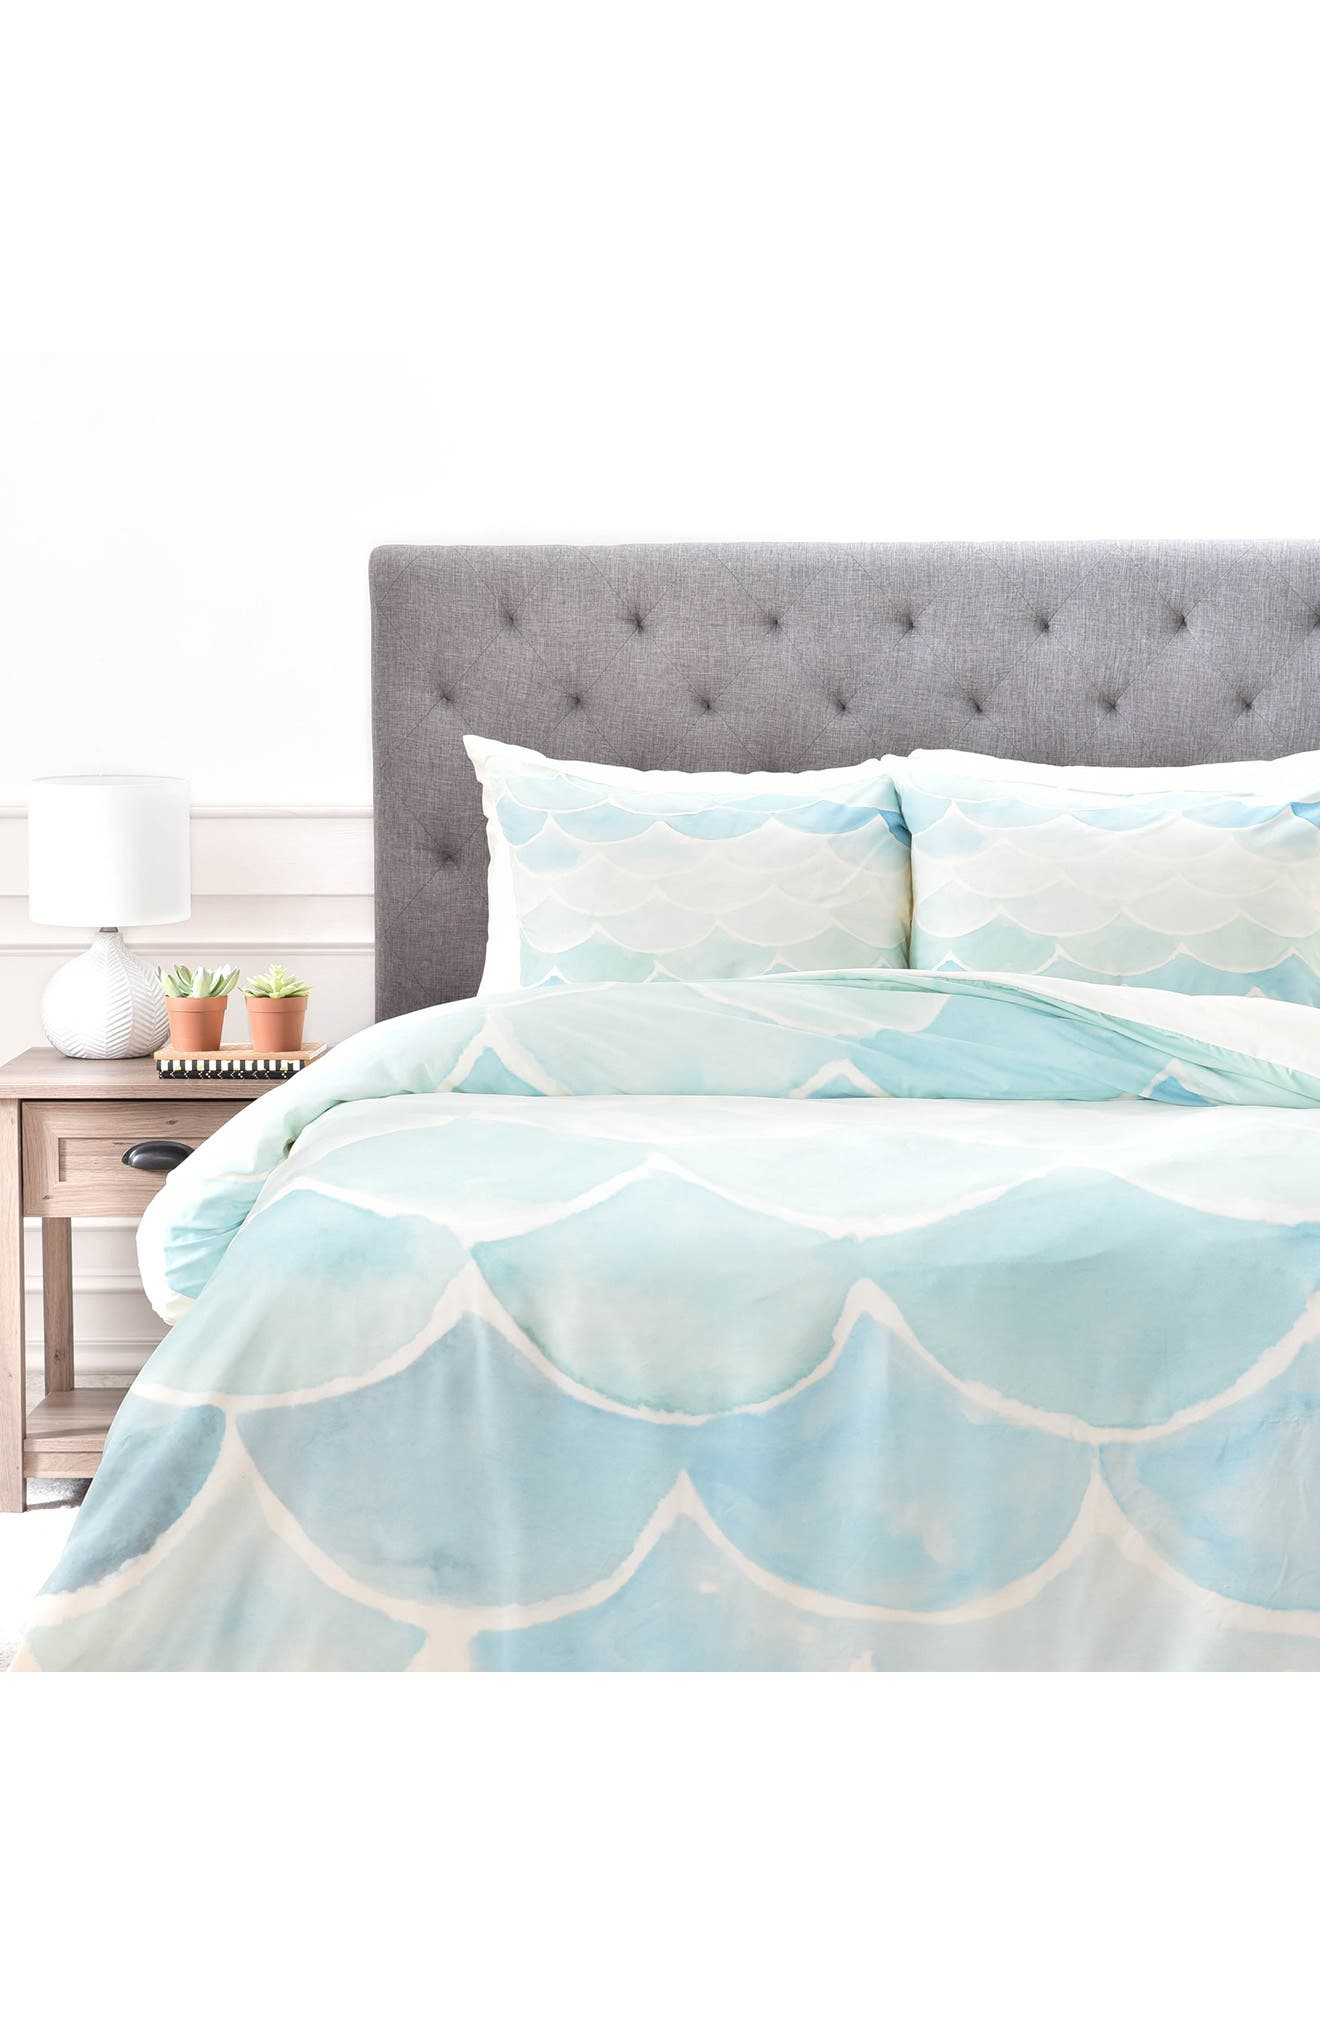 Mermaid Scales Duvet Cover & Sham Set,                             Main thumbnail 1, color,